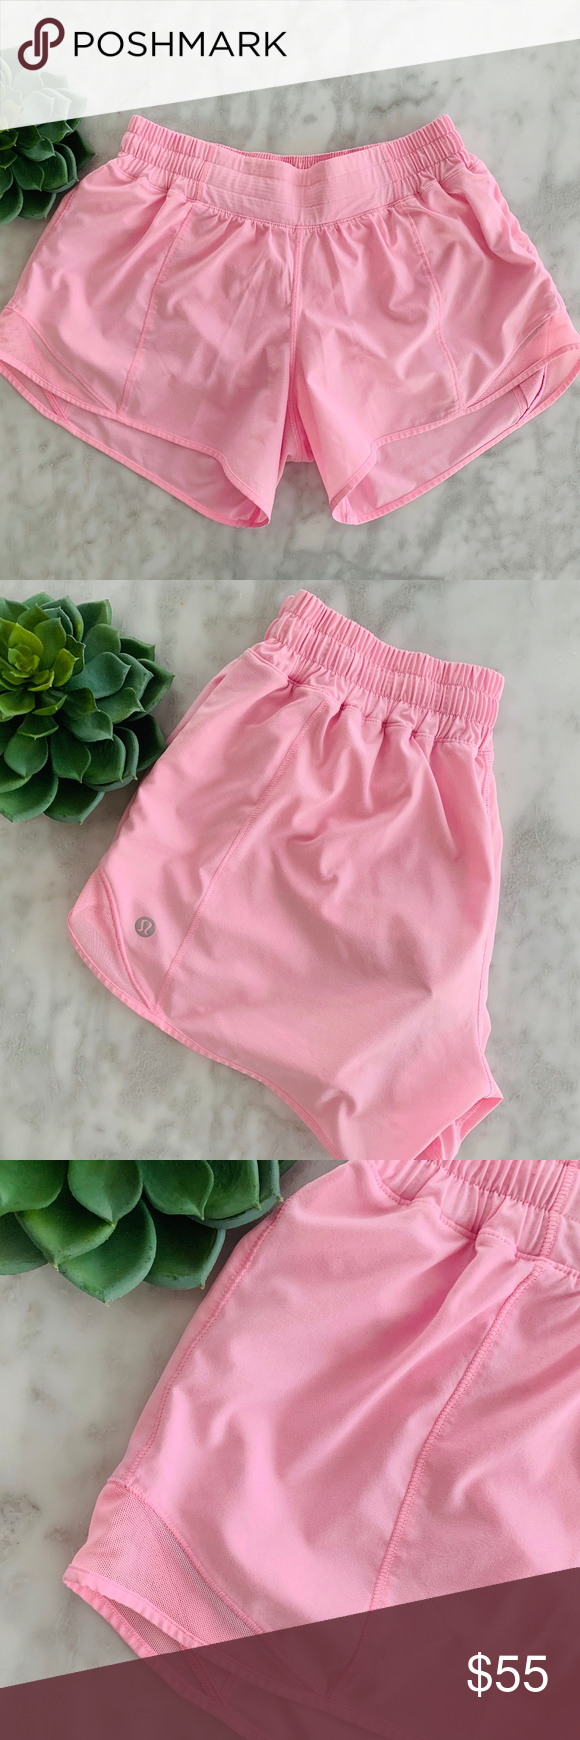 Lululemon Hotty Hot Shorts 6 Miami Pink 6 Max Out Your Stride In These Shorts Designed With Extra Room To Let You Hot Shorts Designer Shorts Gym Shorts Womens